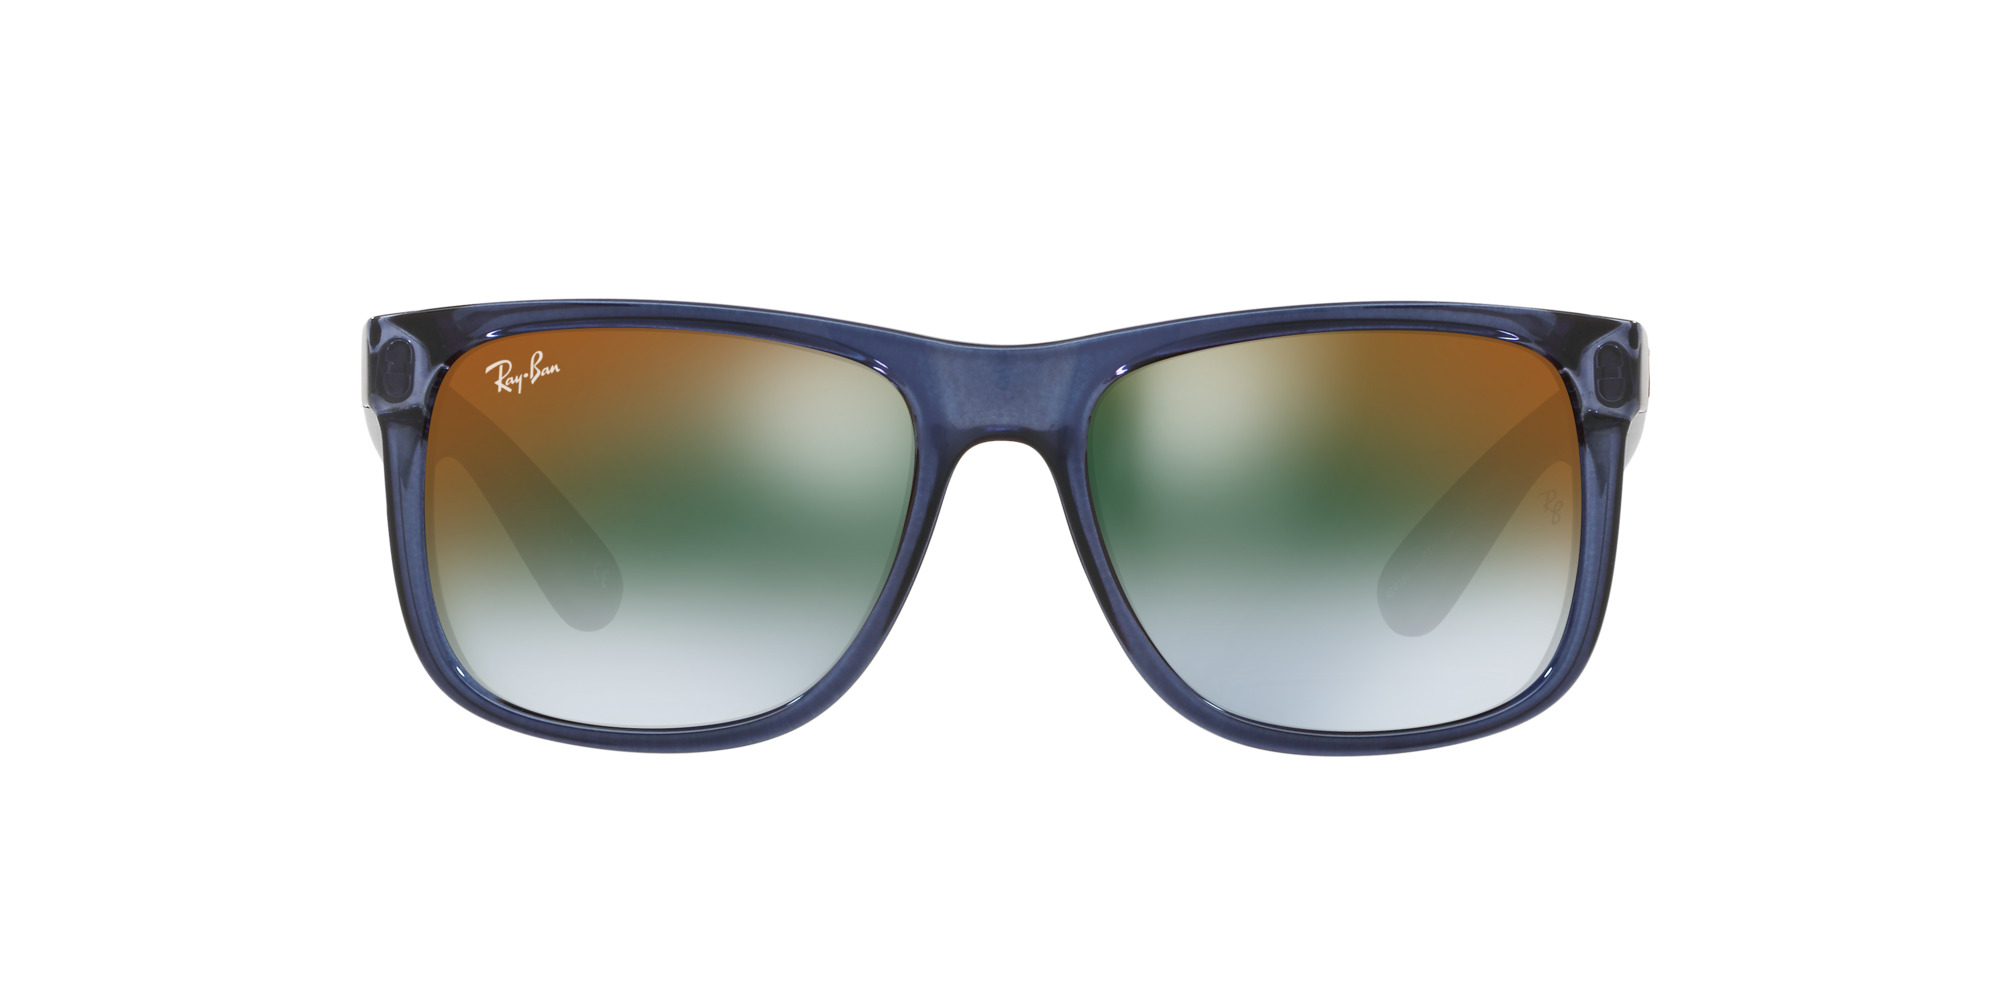 RAY-BAN JUSTIN RB 4165 6341T0 -360